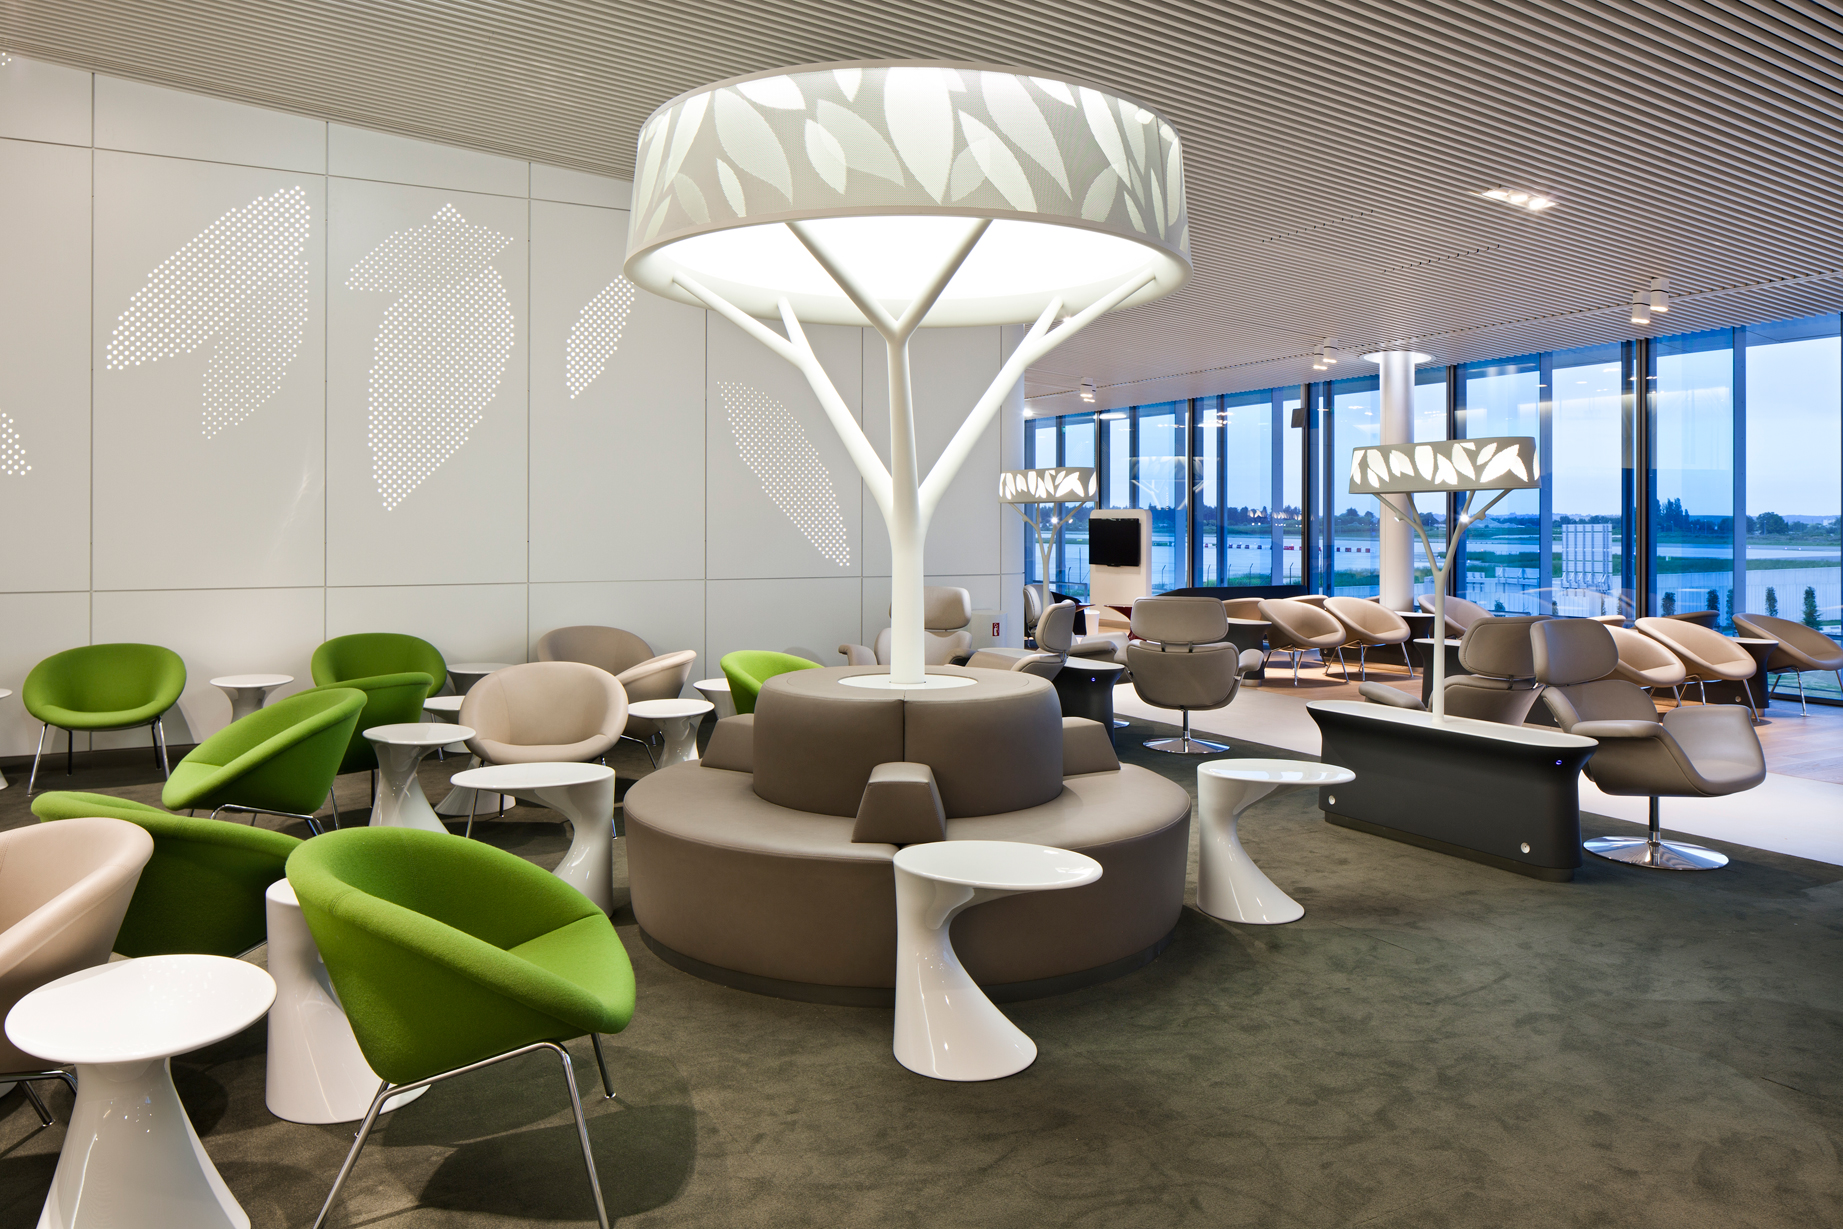 Design Lounge Buiten Thedesignair Top 10 Airport Lounges 2012 Thedesignair